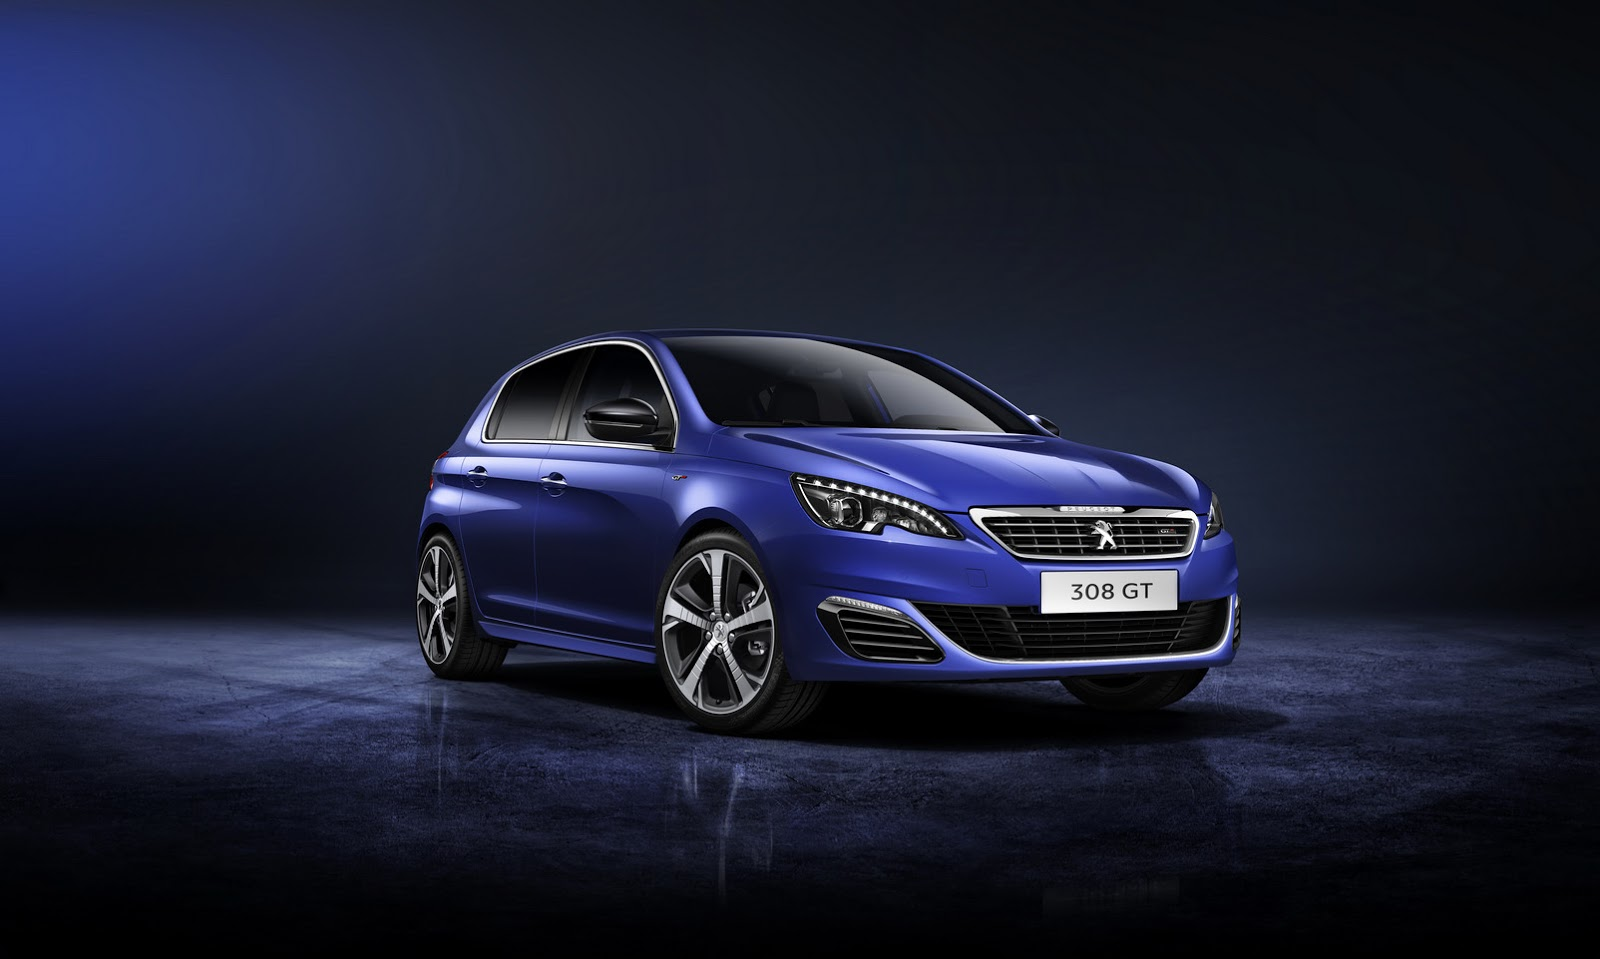 peugeot ruins whatever special the 308 gt had with new gt line trim carscoops. Black Bedroom Furniture Sets. Home Design Ideas